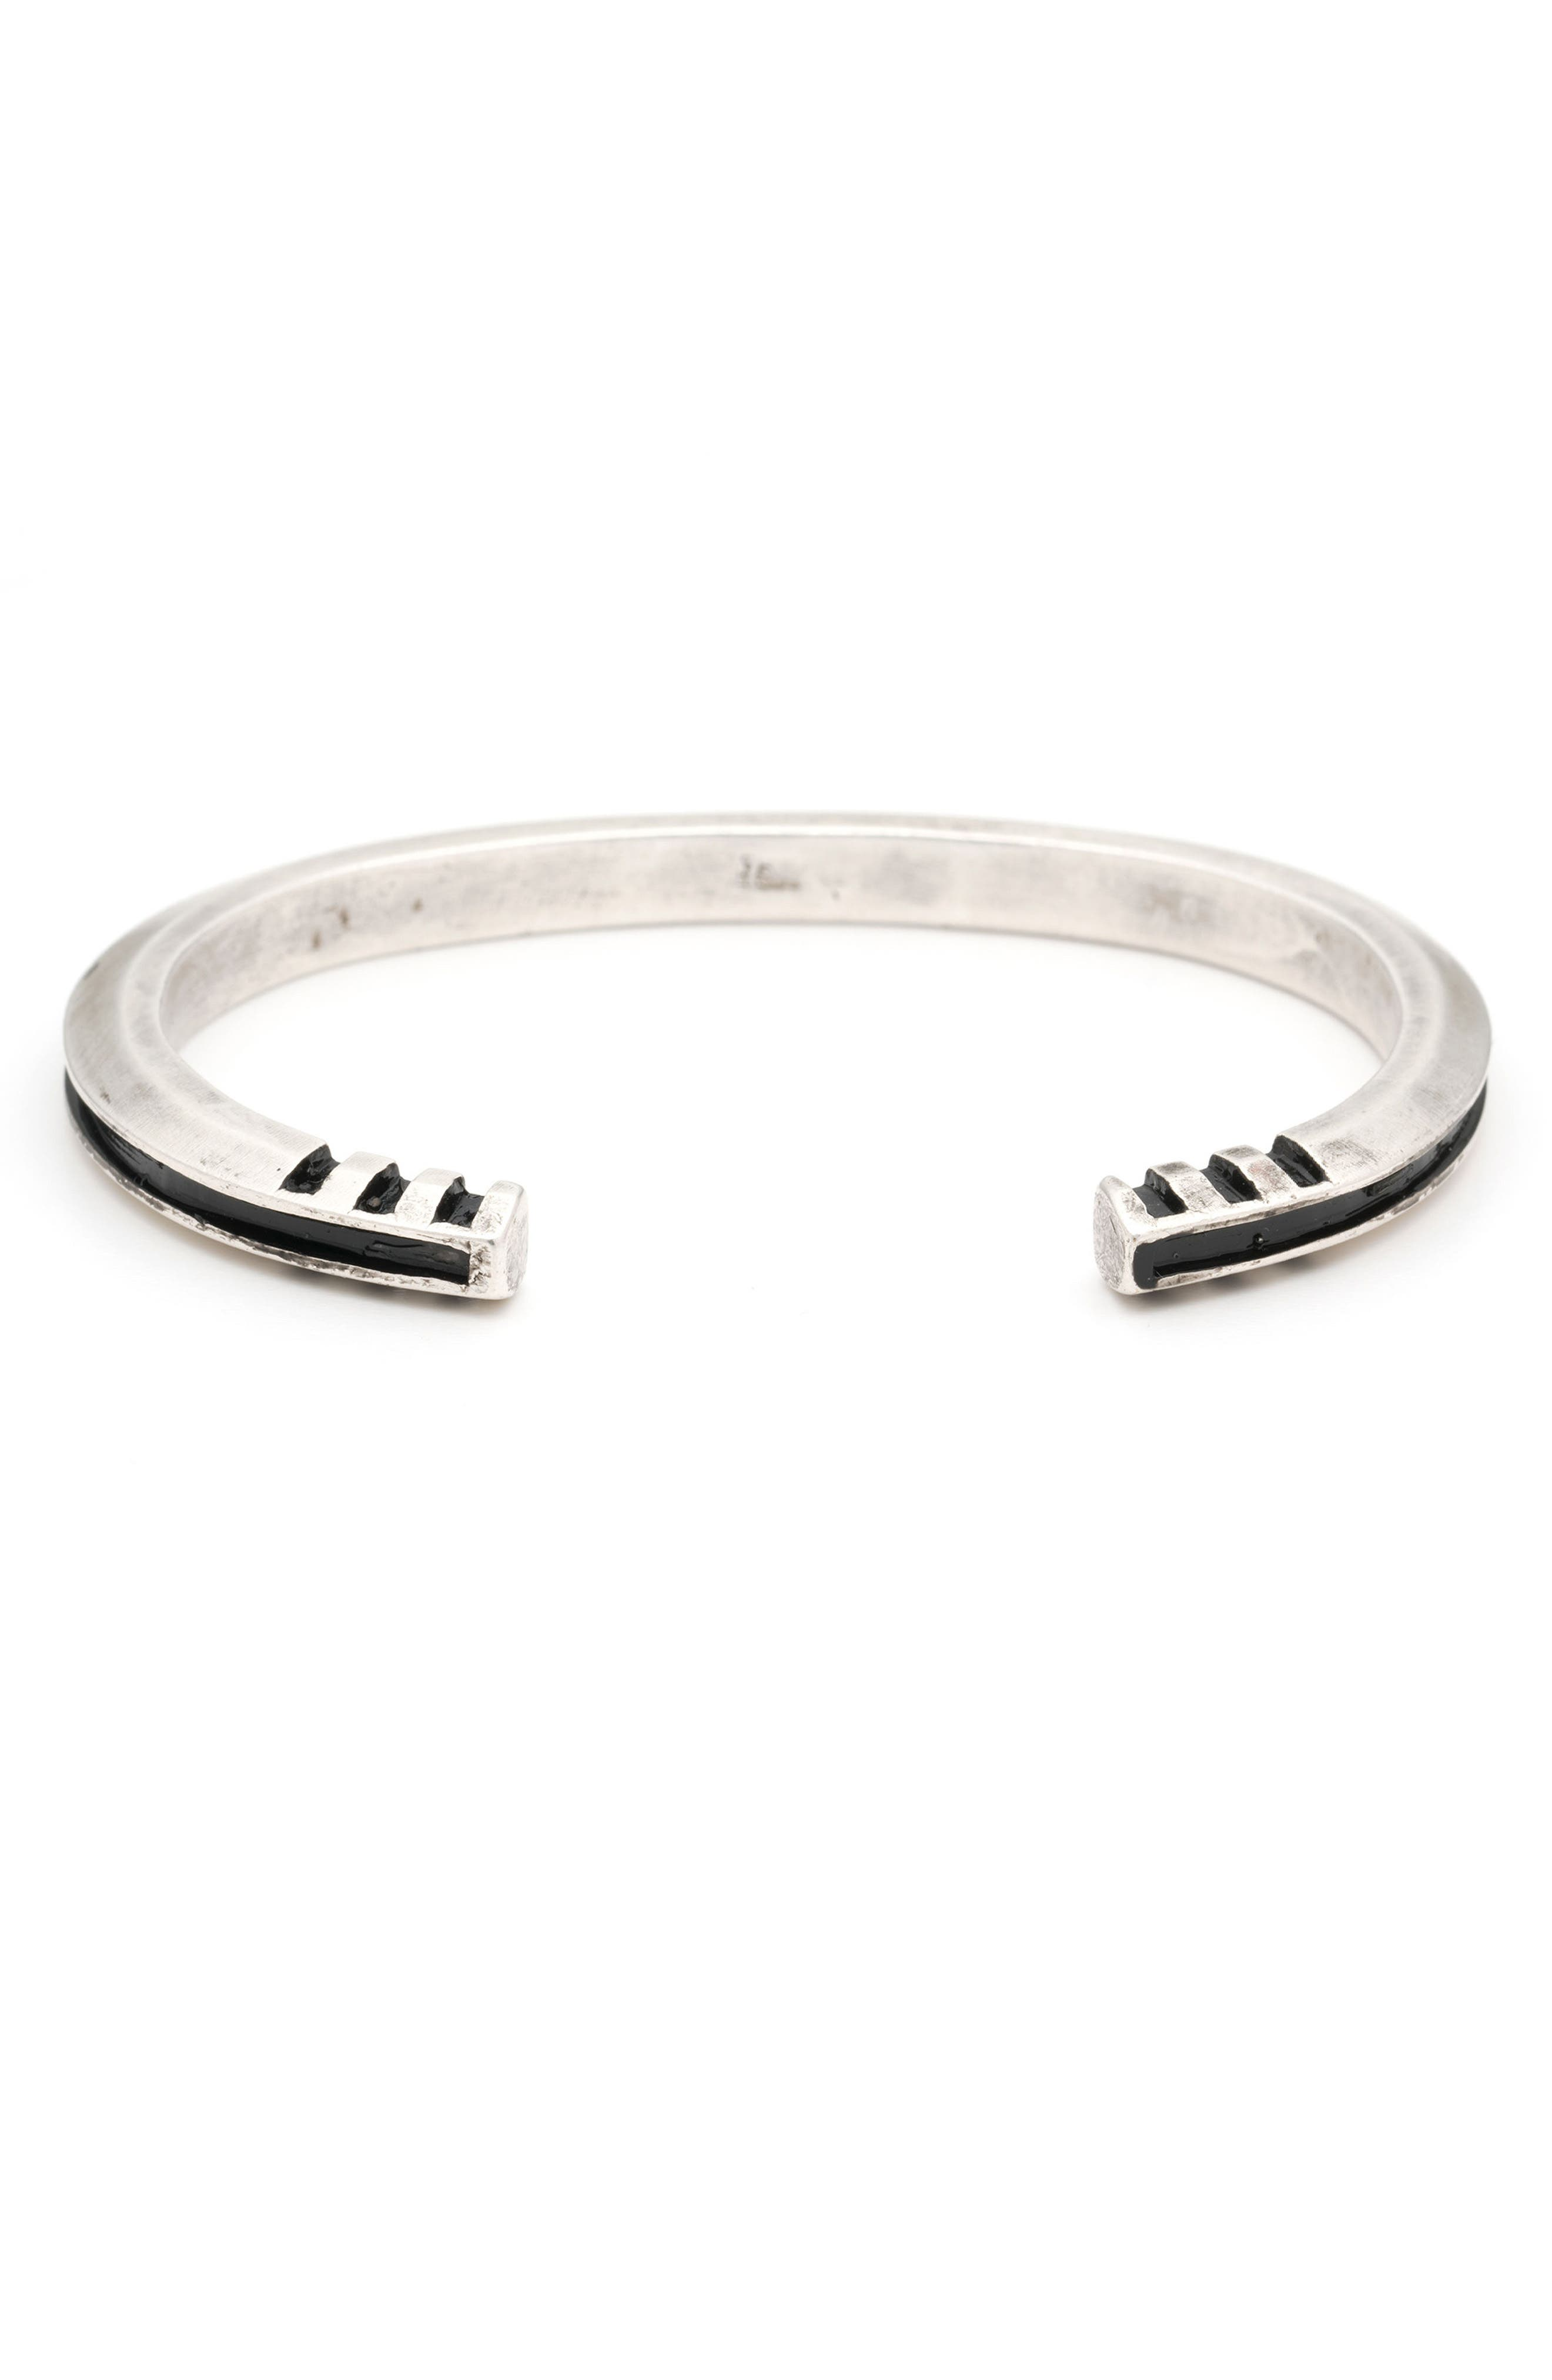 Totality Cuff Bracelet,                         Main,                         color, Silver